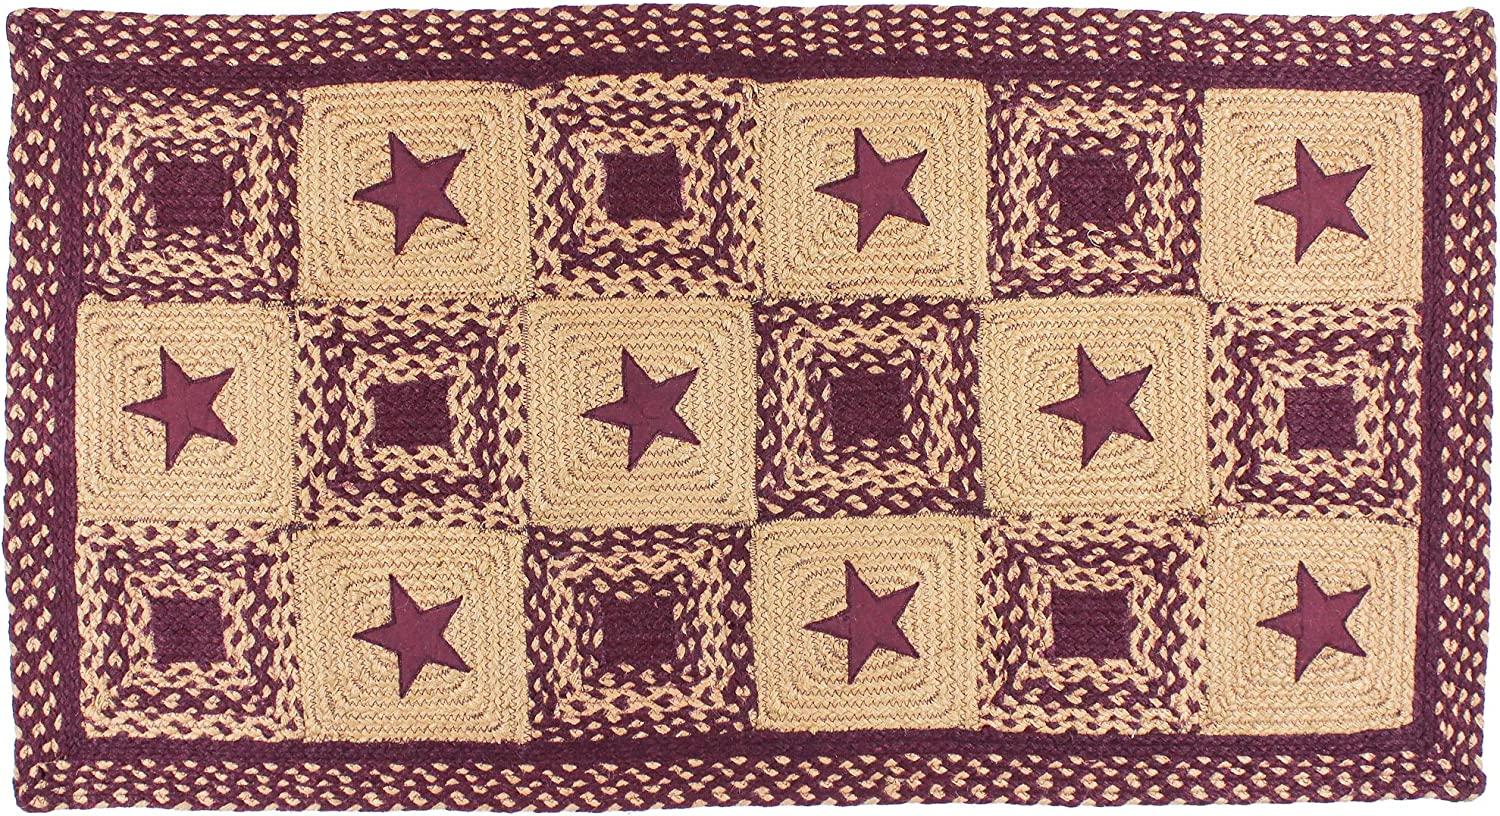 IHF Braided Rectangle Area/Accent Rug Applique Country Star Wine 20X30